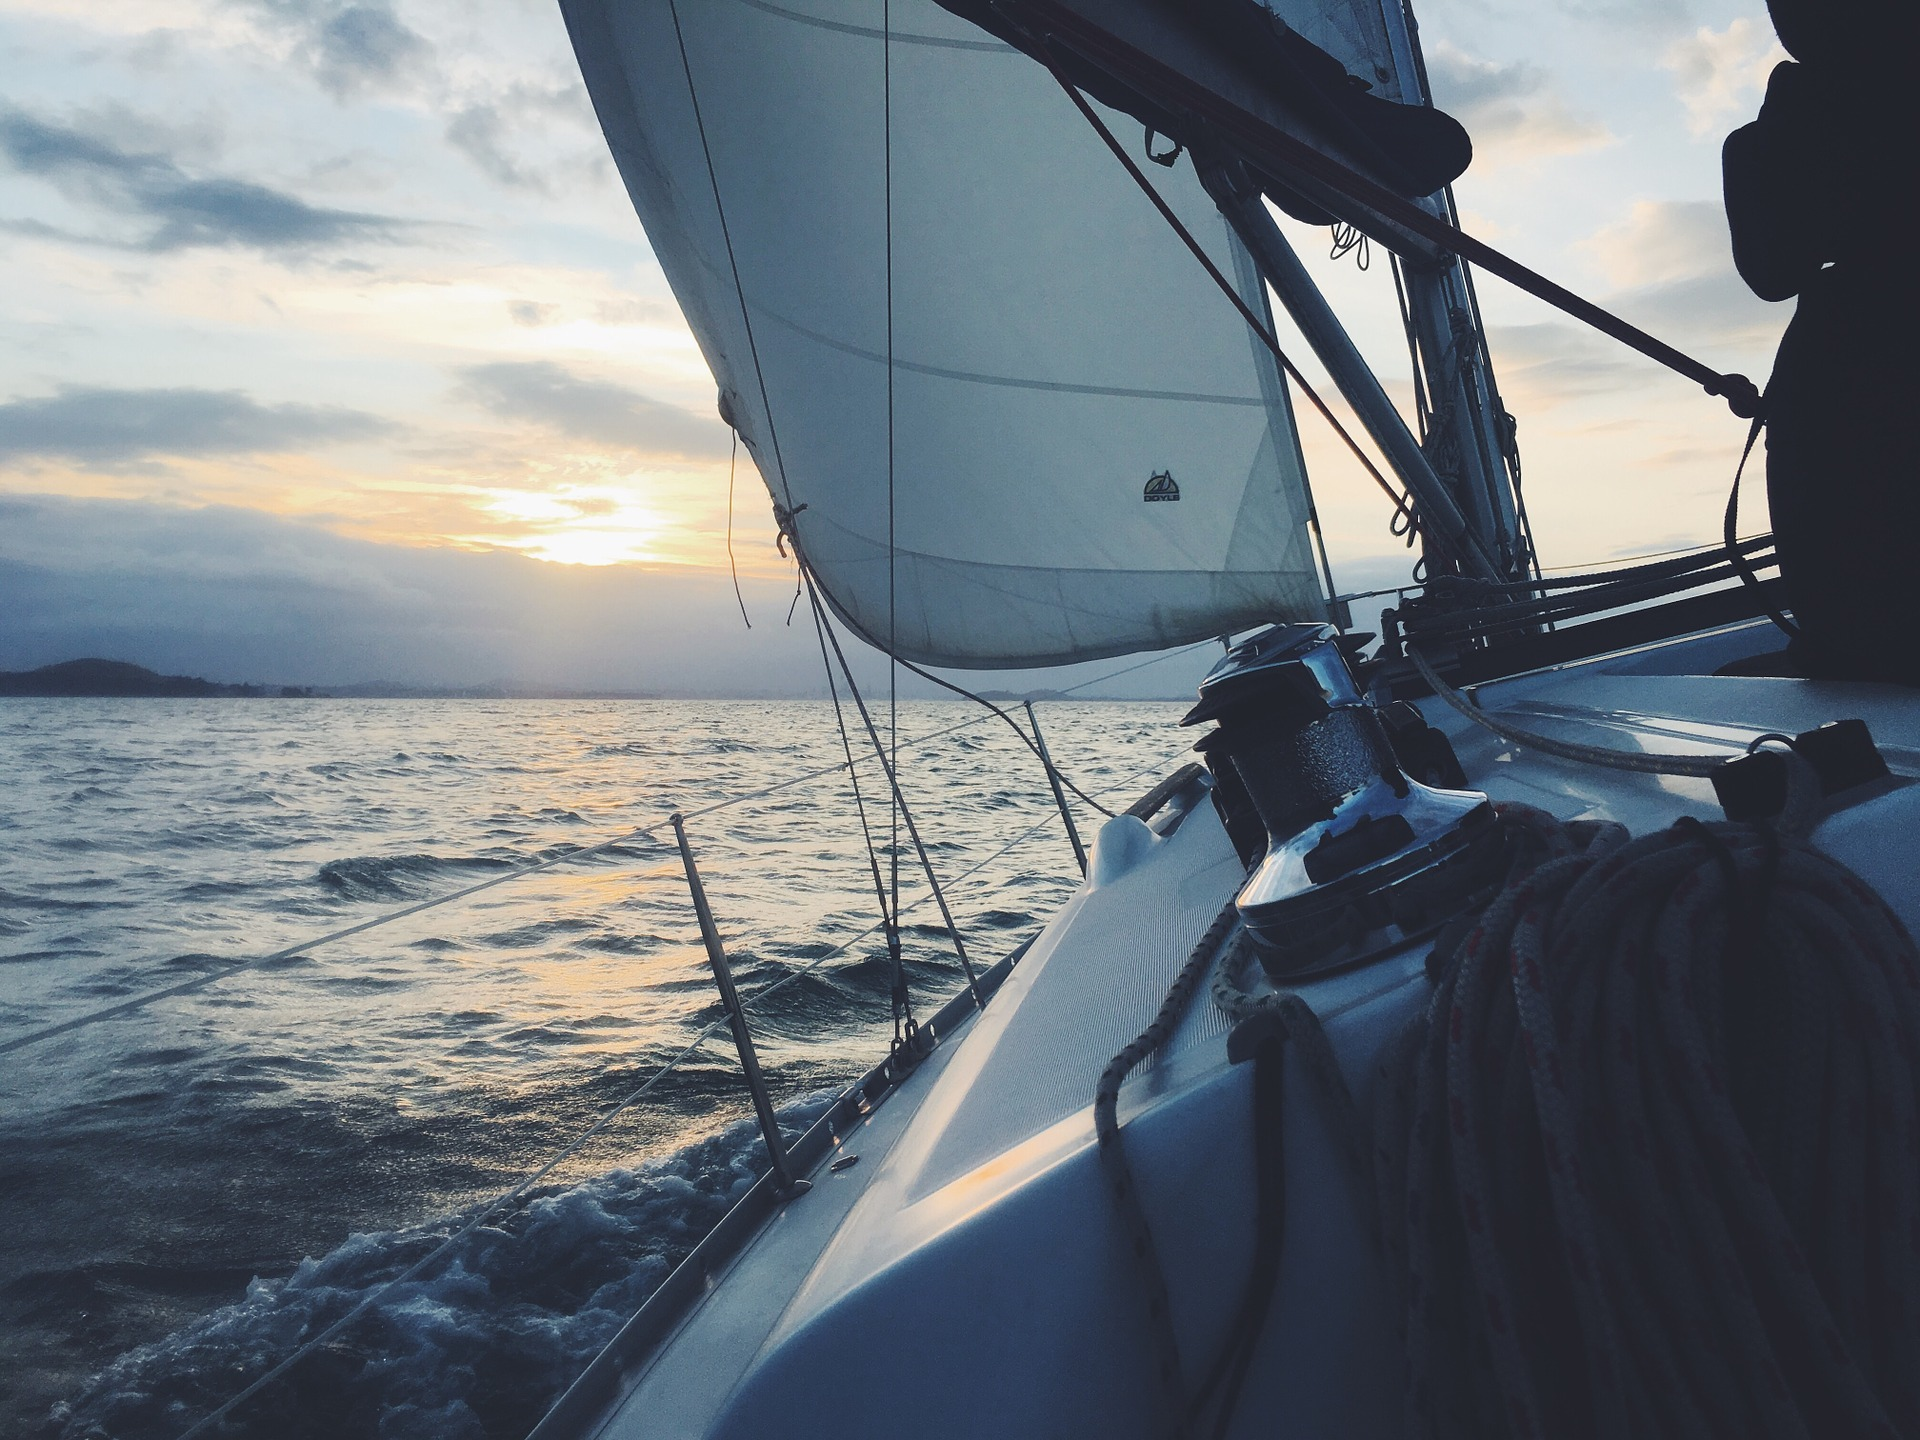 Adventure on a sailboat